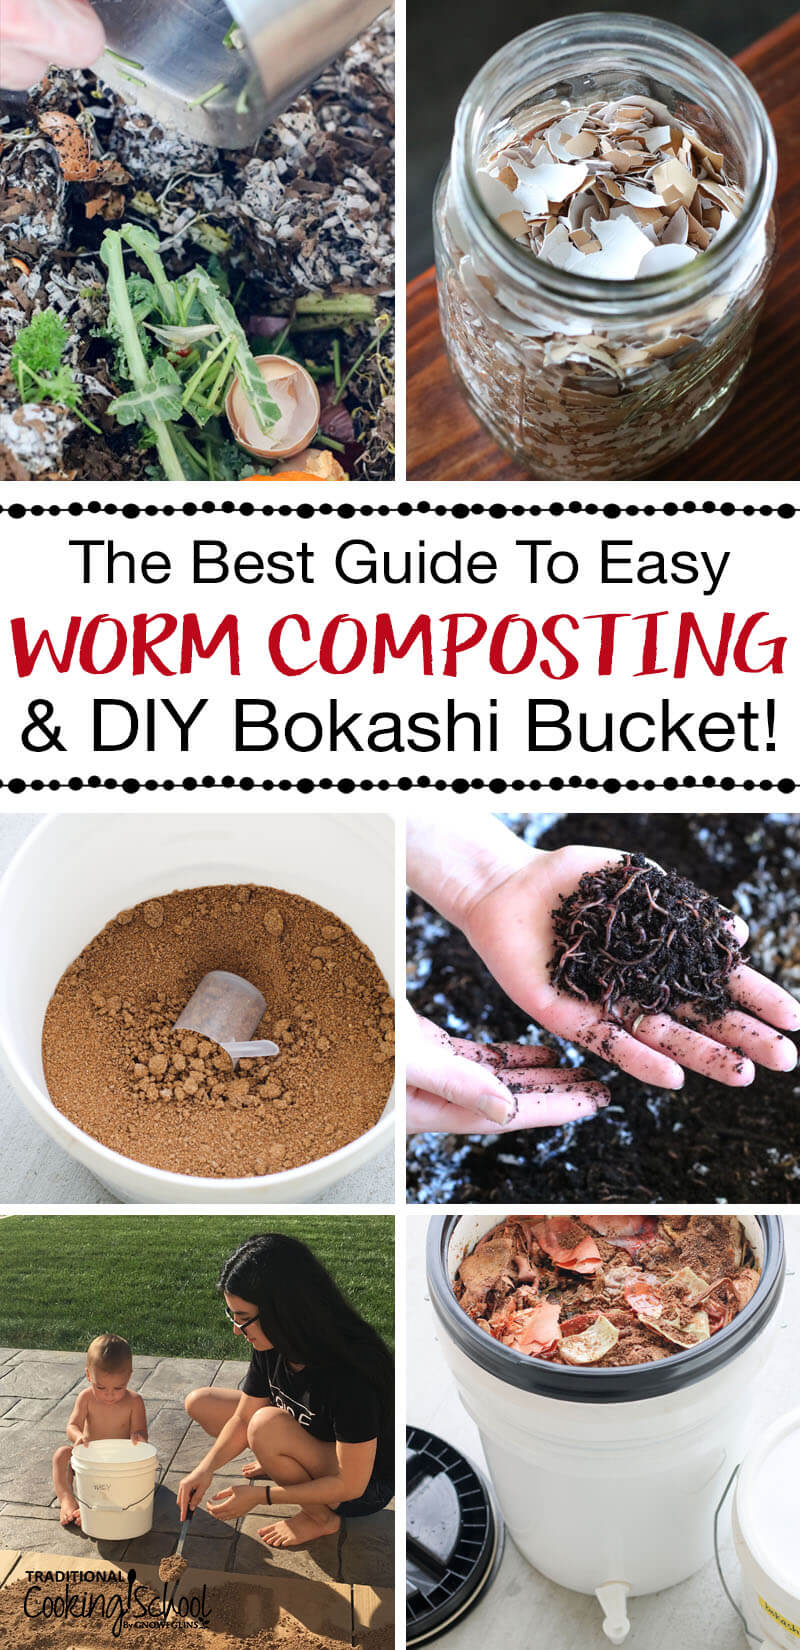 "photo collage of how to compost, including photos of a bokashi bucket, worms, bokashi bran, food scraps, and crushed egg shells, with text overlay: ""The Best Guide To Easy Worm Composting & DIY Bokashi Bucket!"""